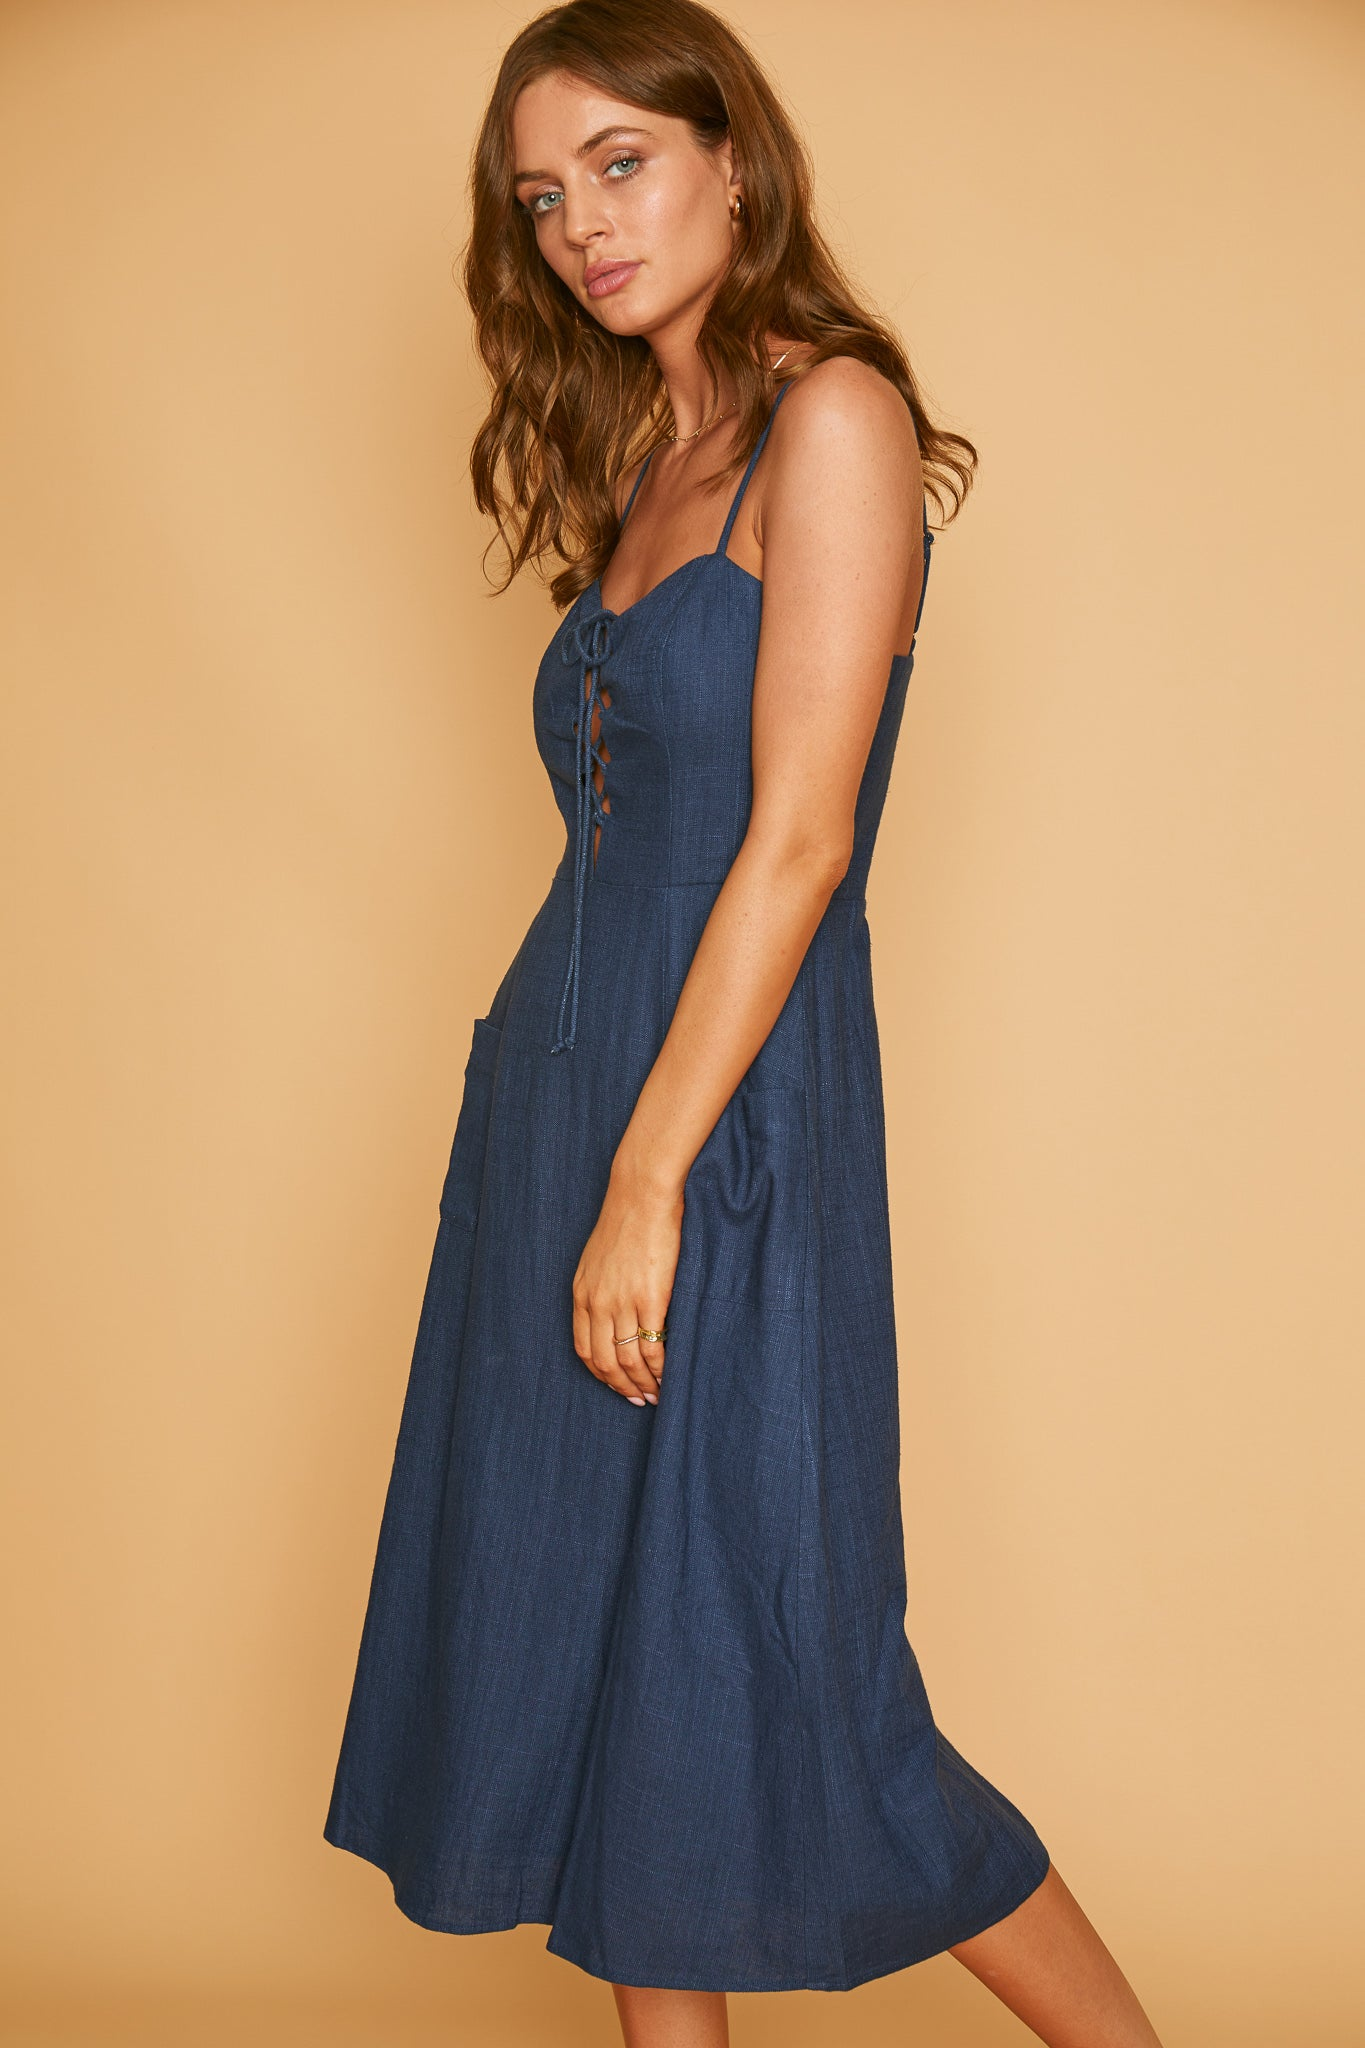 Out of the Blue Midi Dress